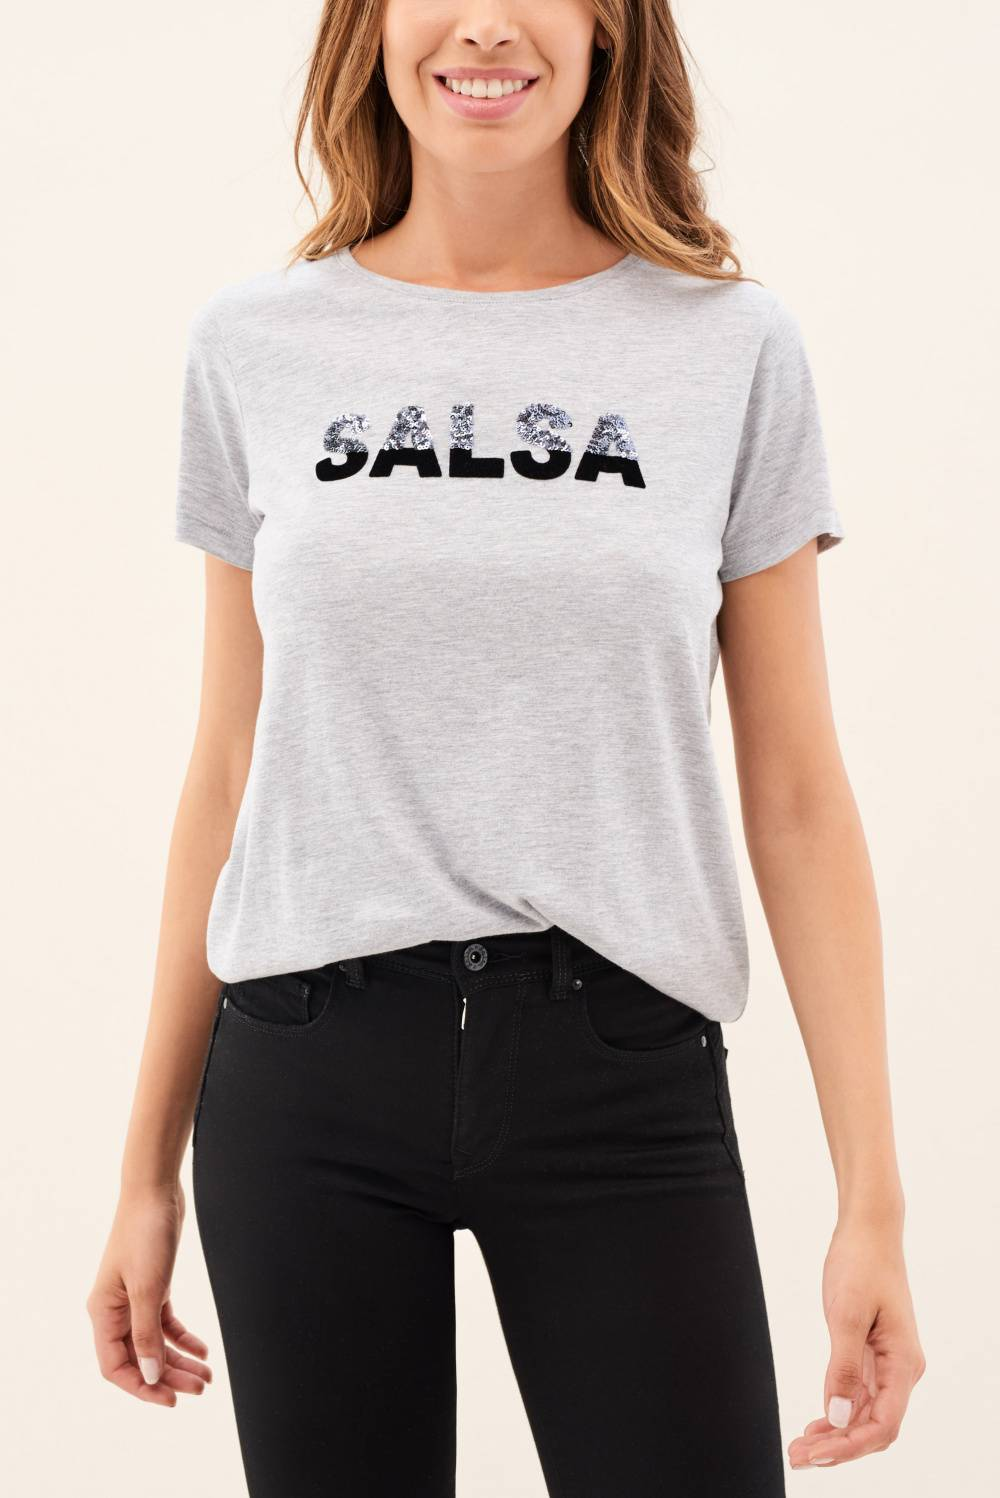 T-Shirt, mit Salsa-Label in Pailletten - Salsa